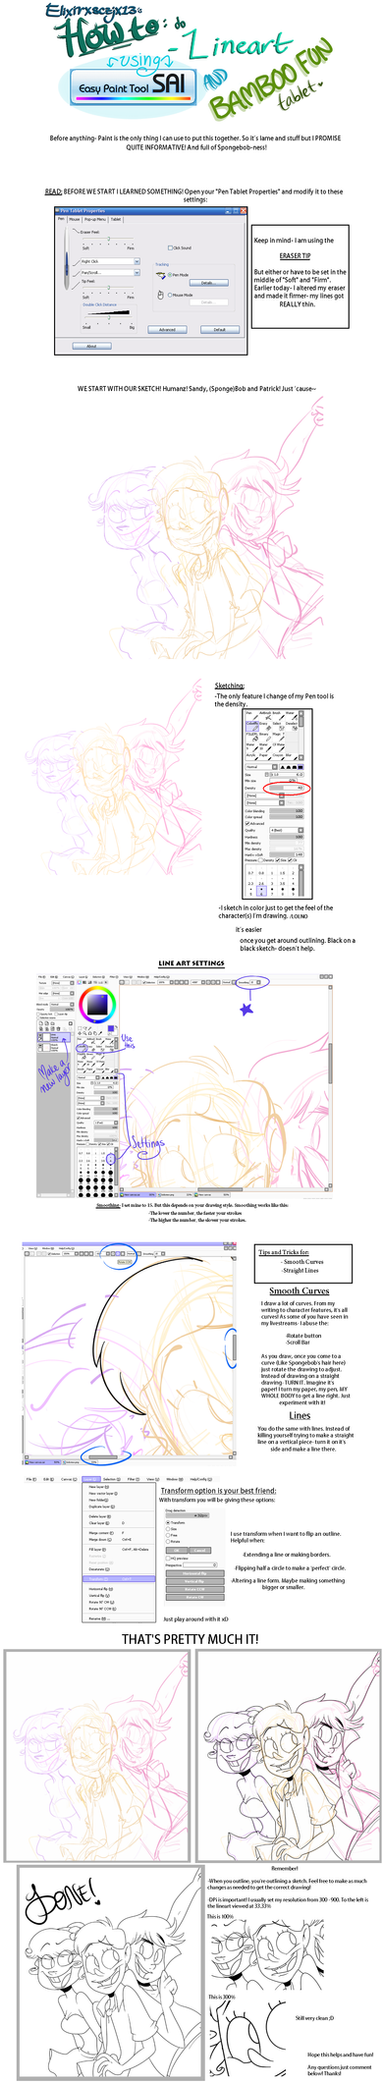 How To Paste An Image Into Paint Tool Sai